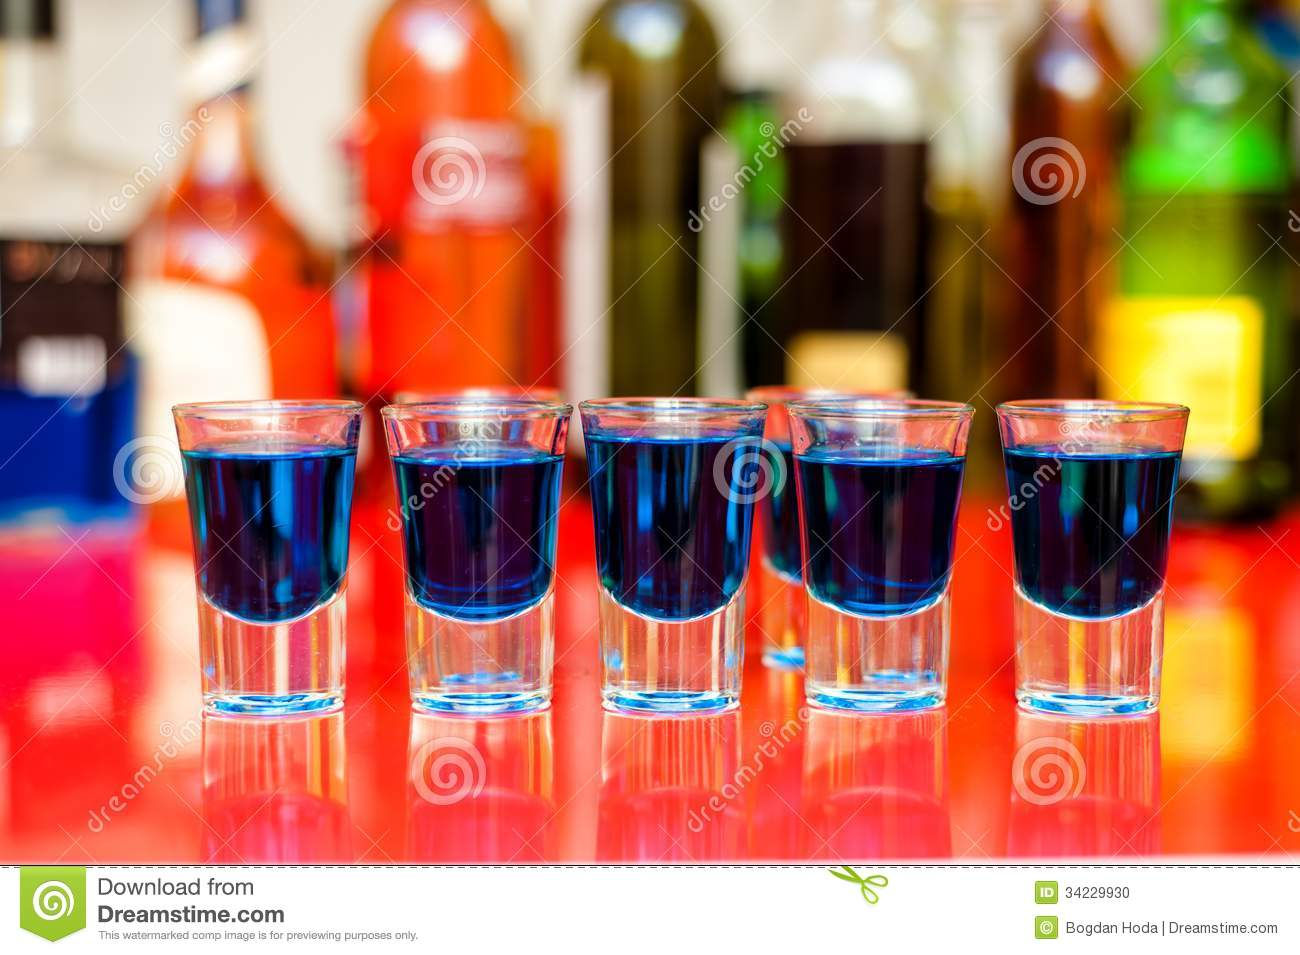 Popular Shots and Shooters For Your Bachelorette Party